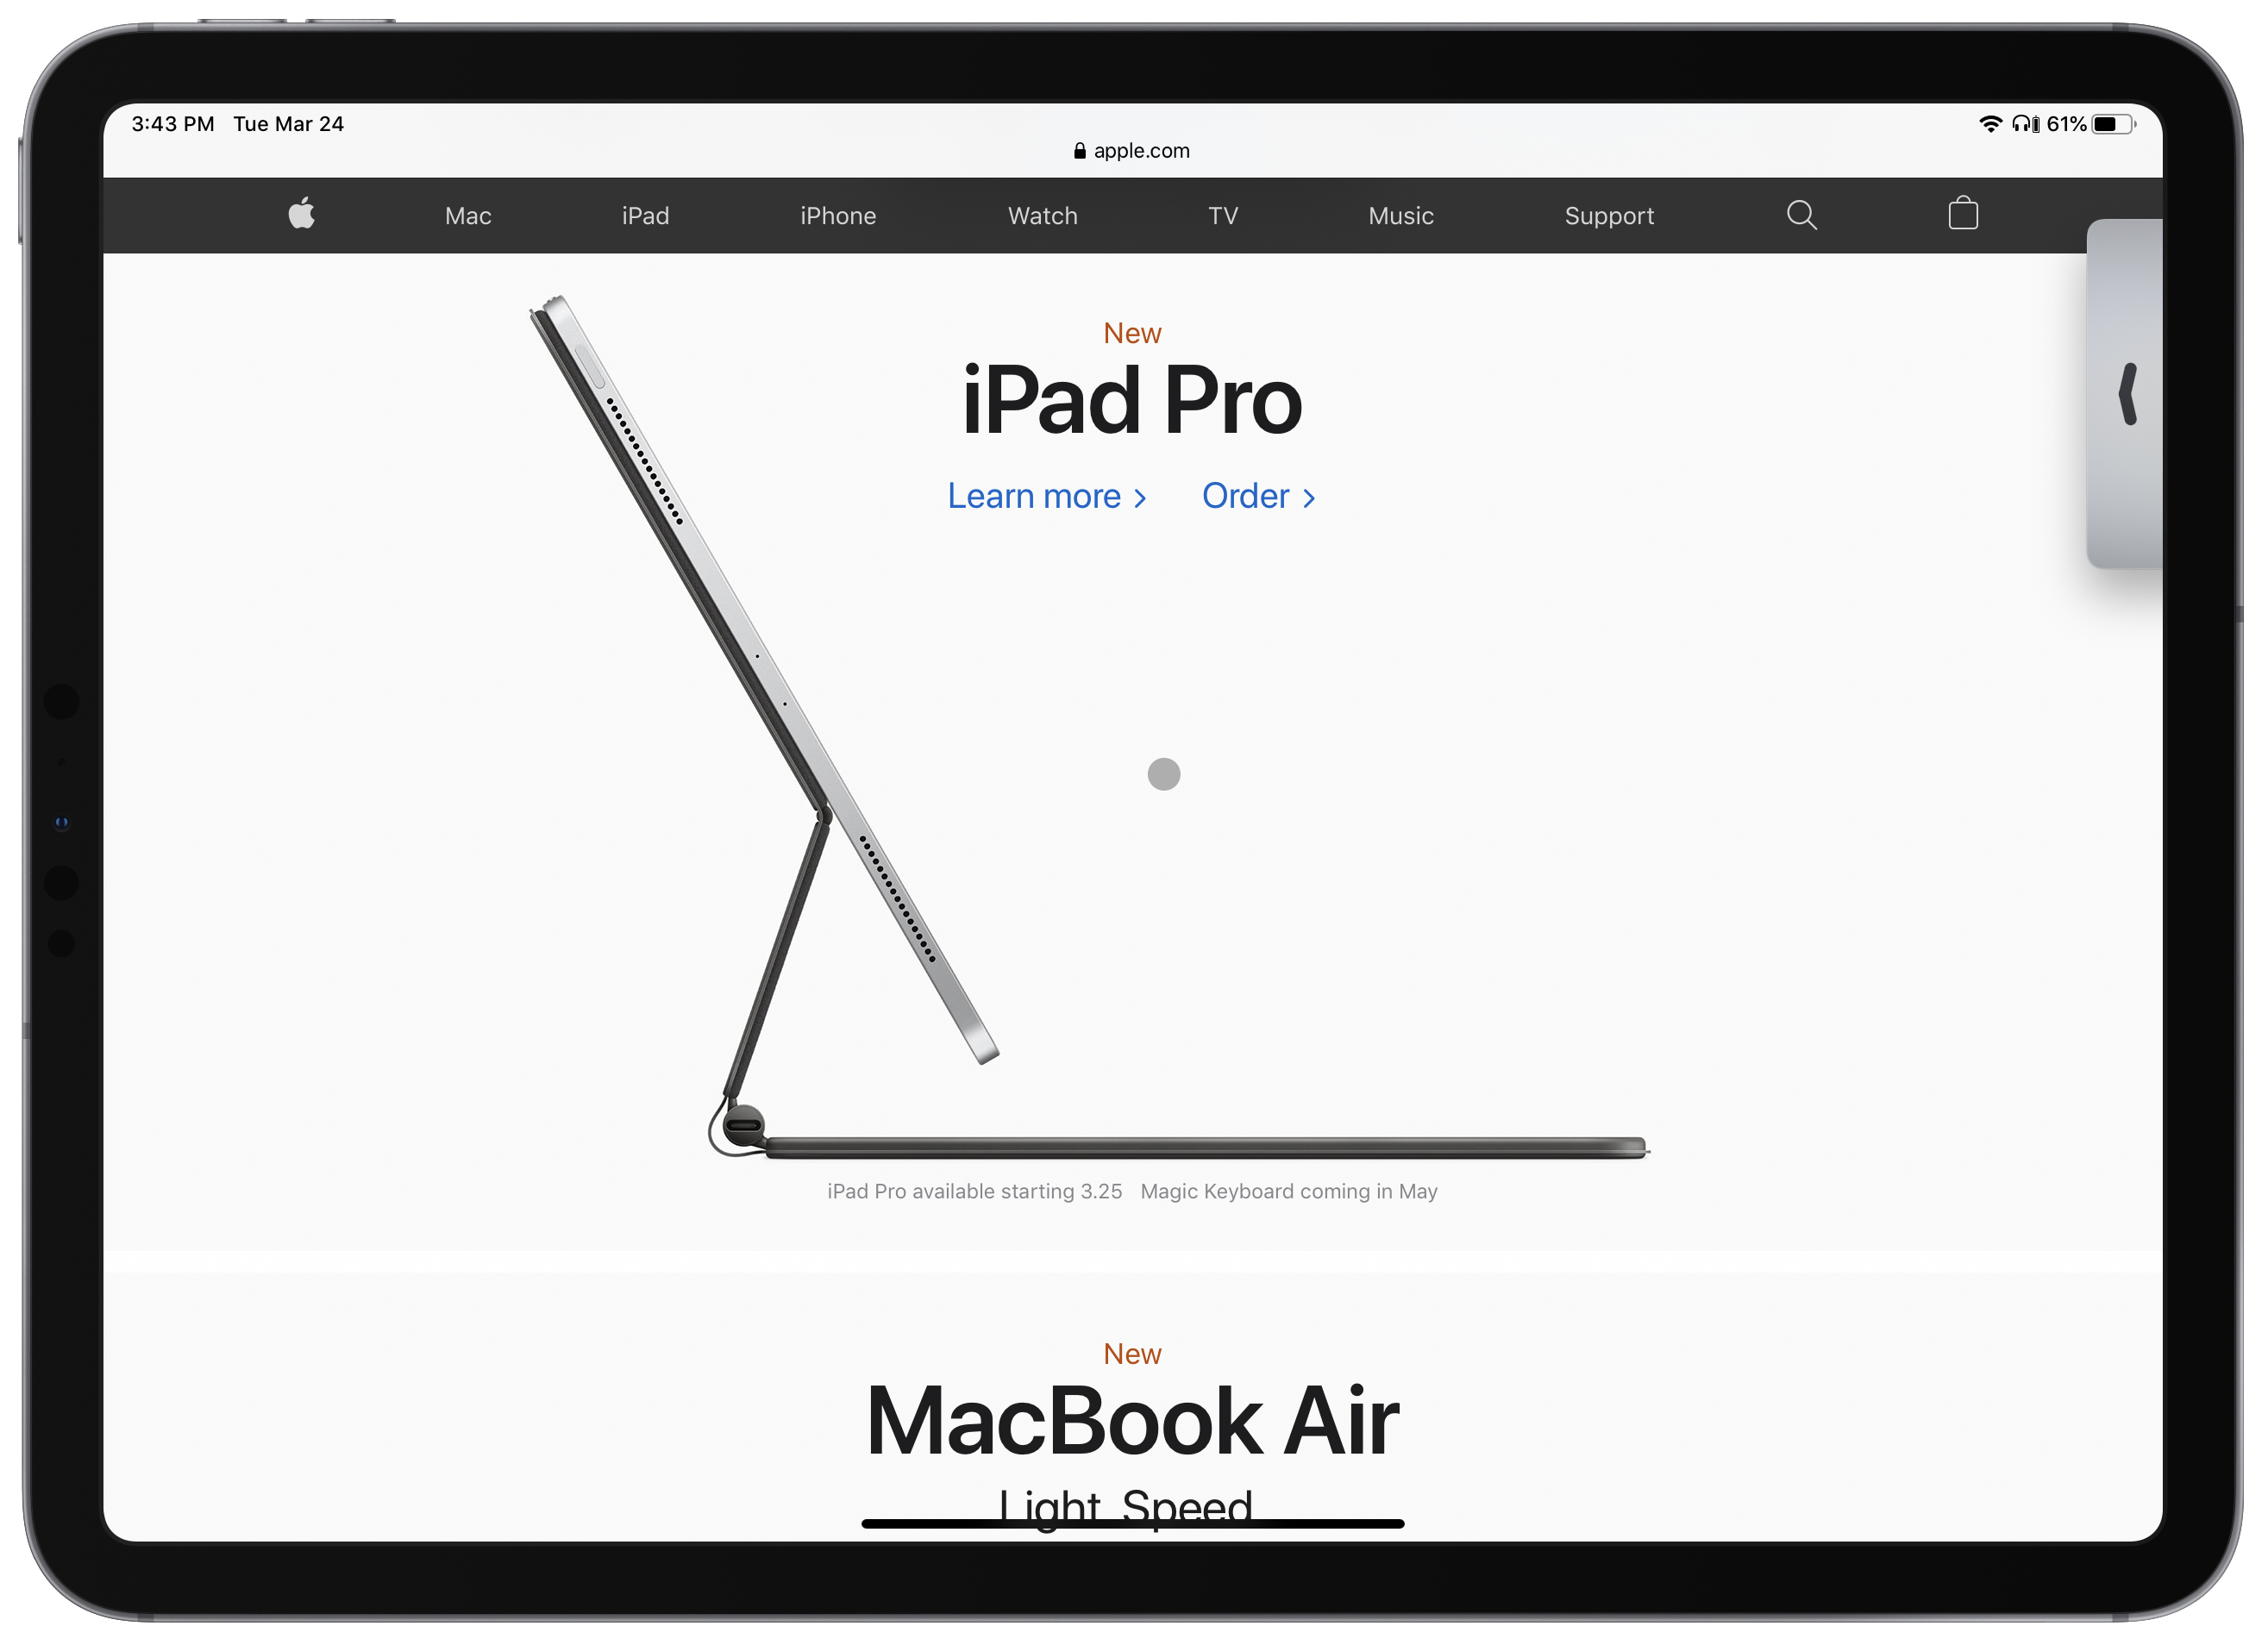 Apple's iPad webpage, featuring the iPadOS pointer in the centre